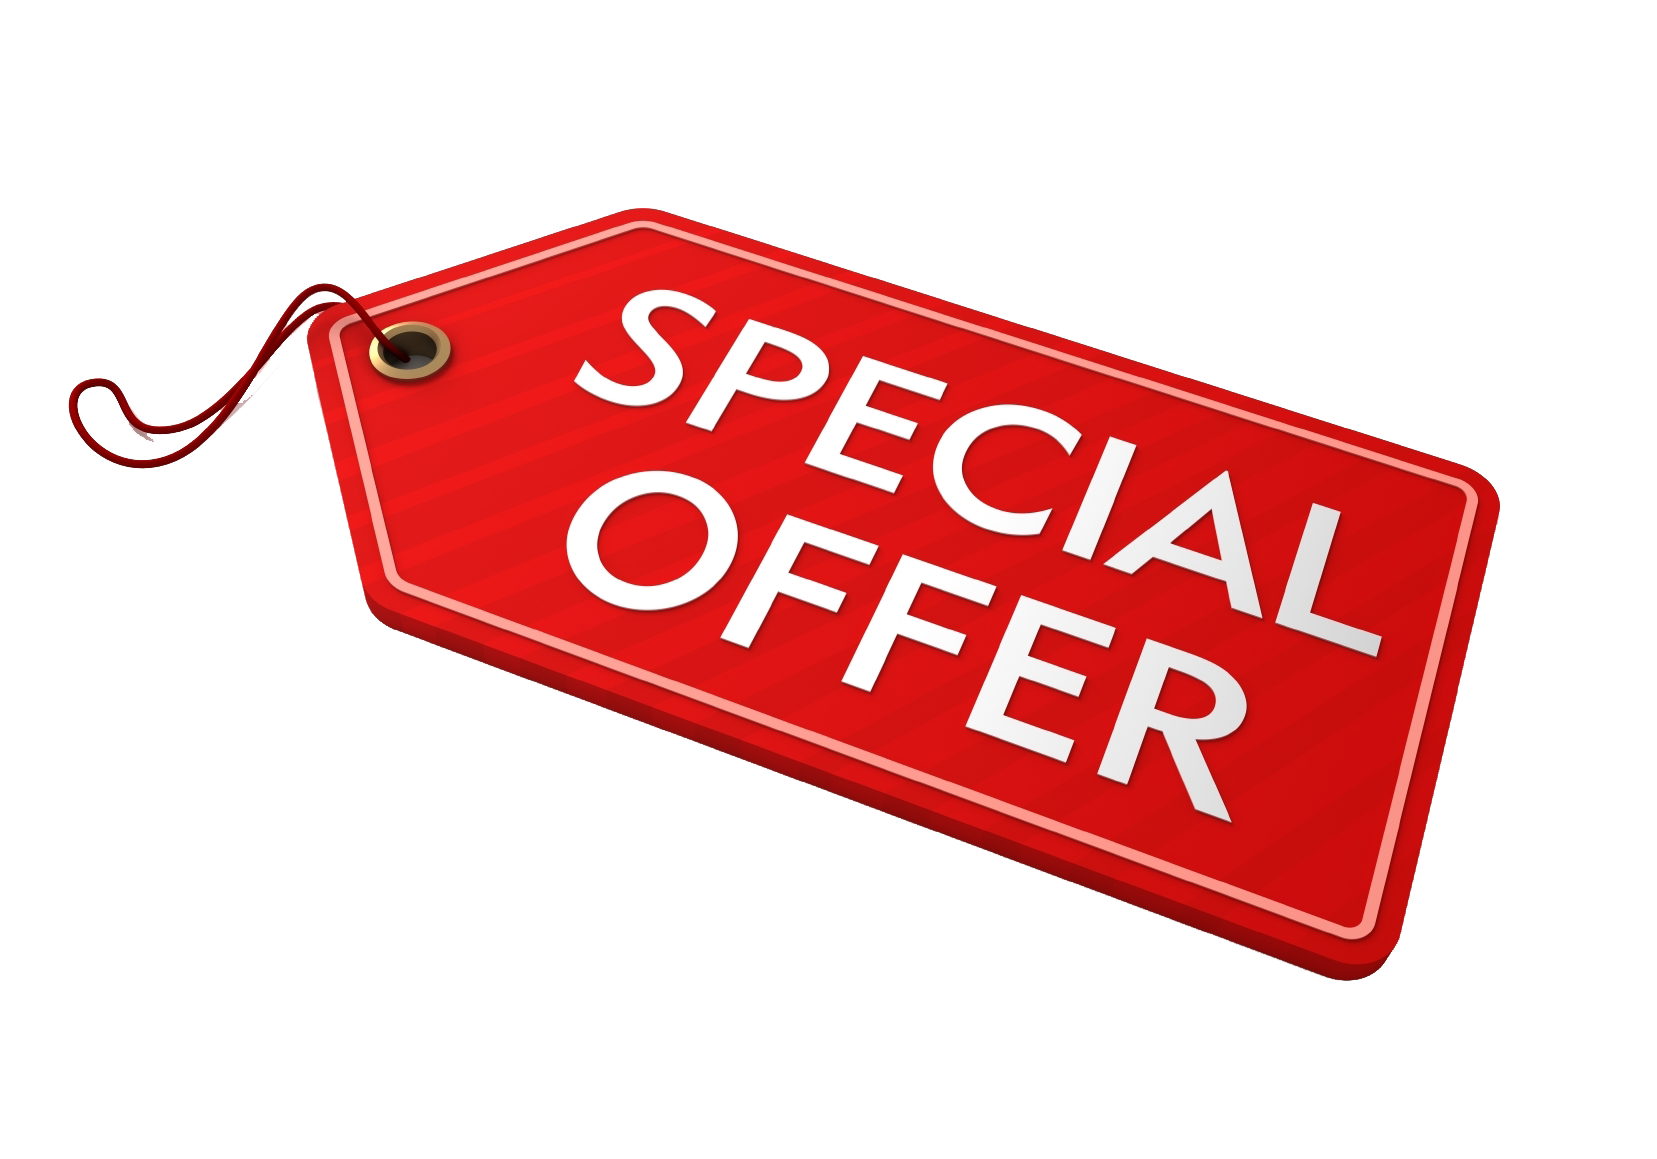 Special Offer PNG - 8456